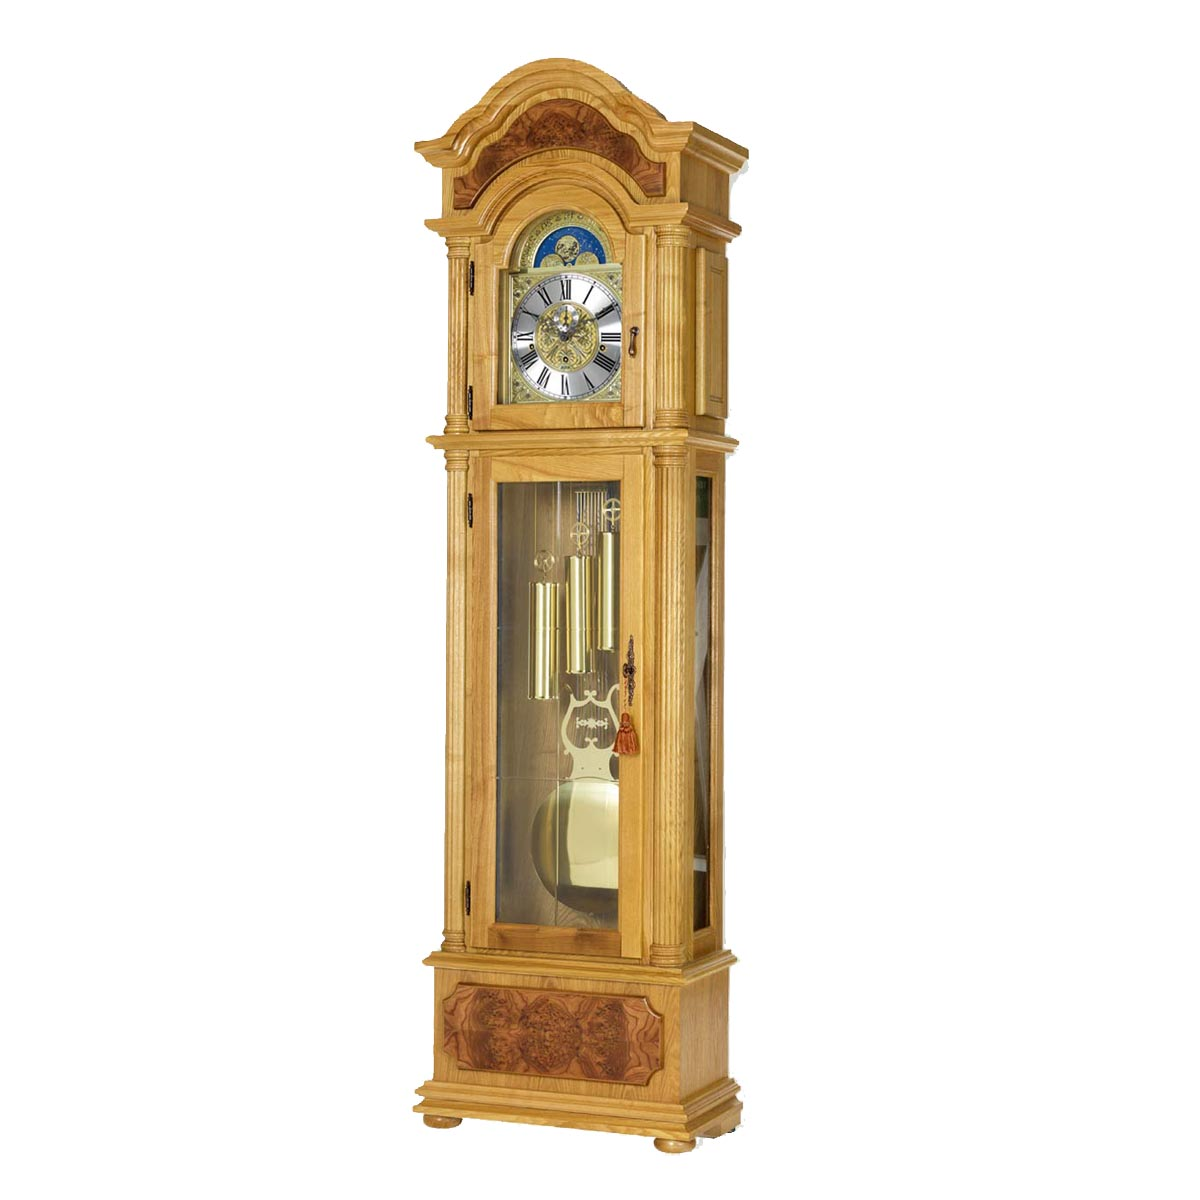 BURLINGTON-Oak Grandfather Floor Clock